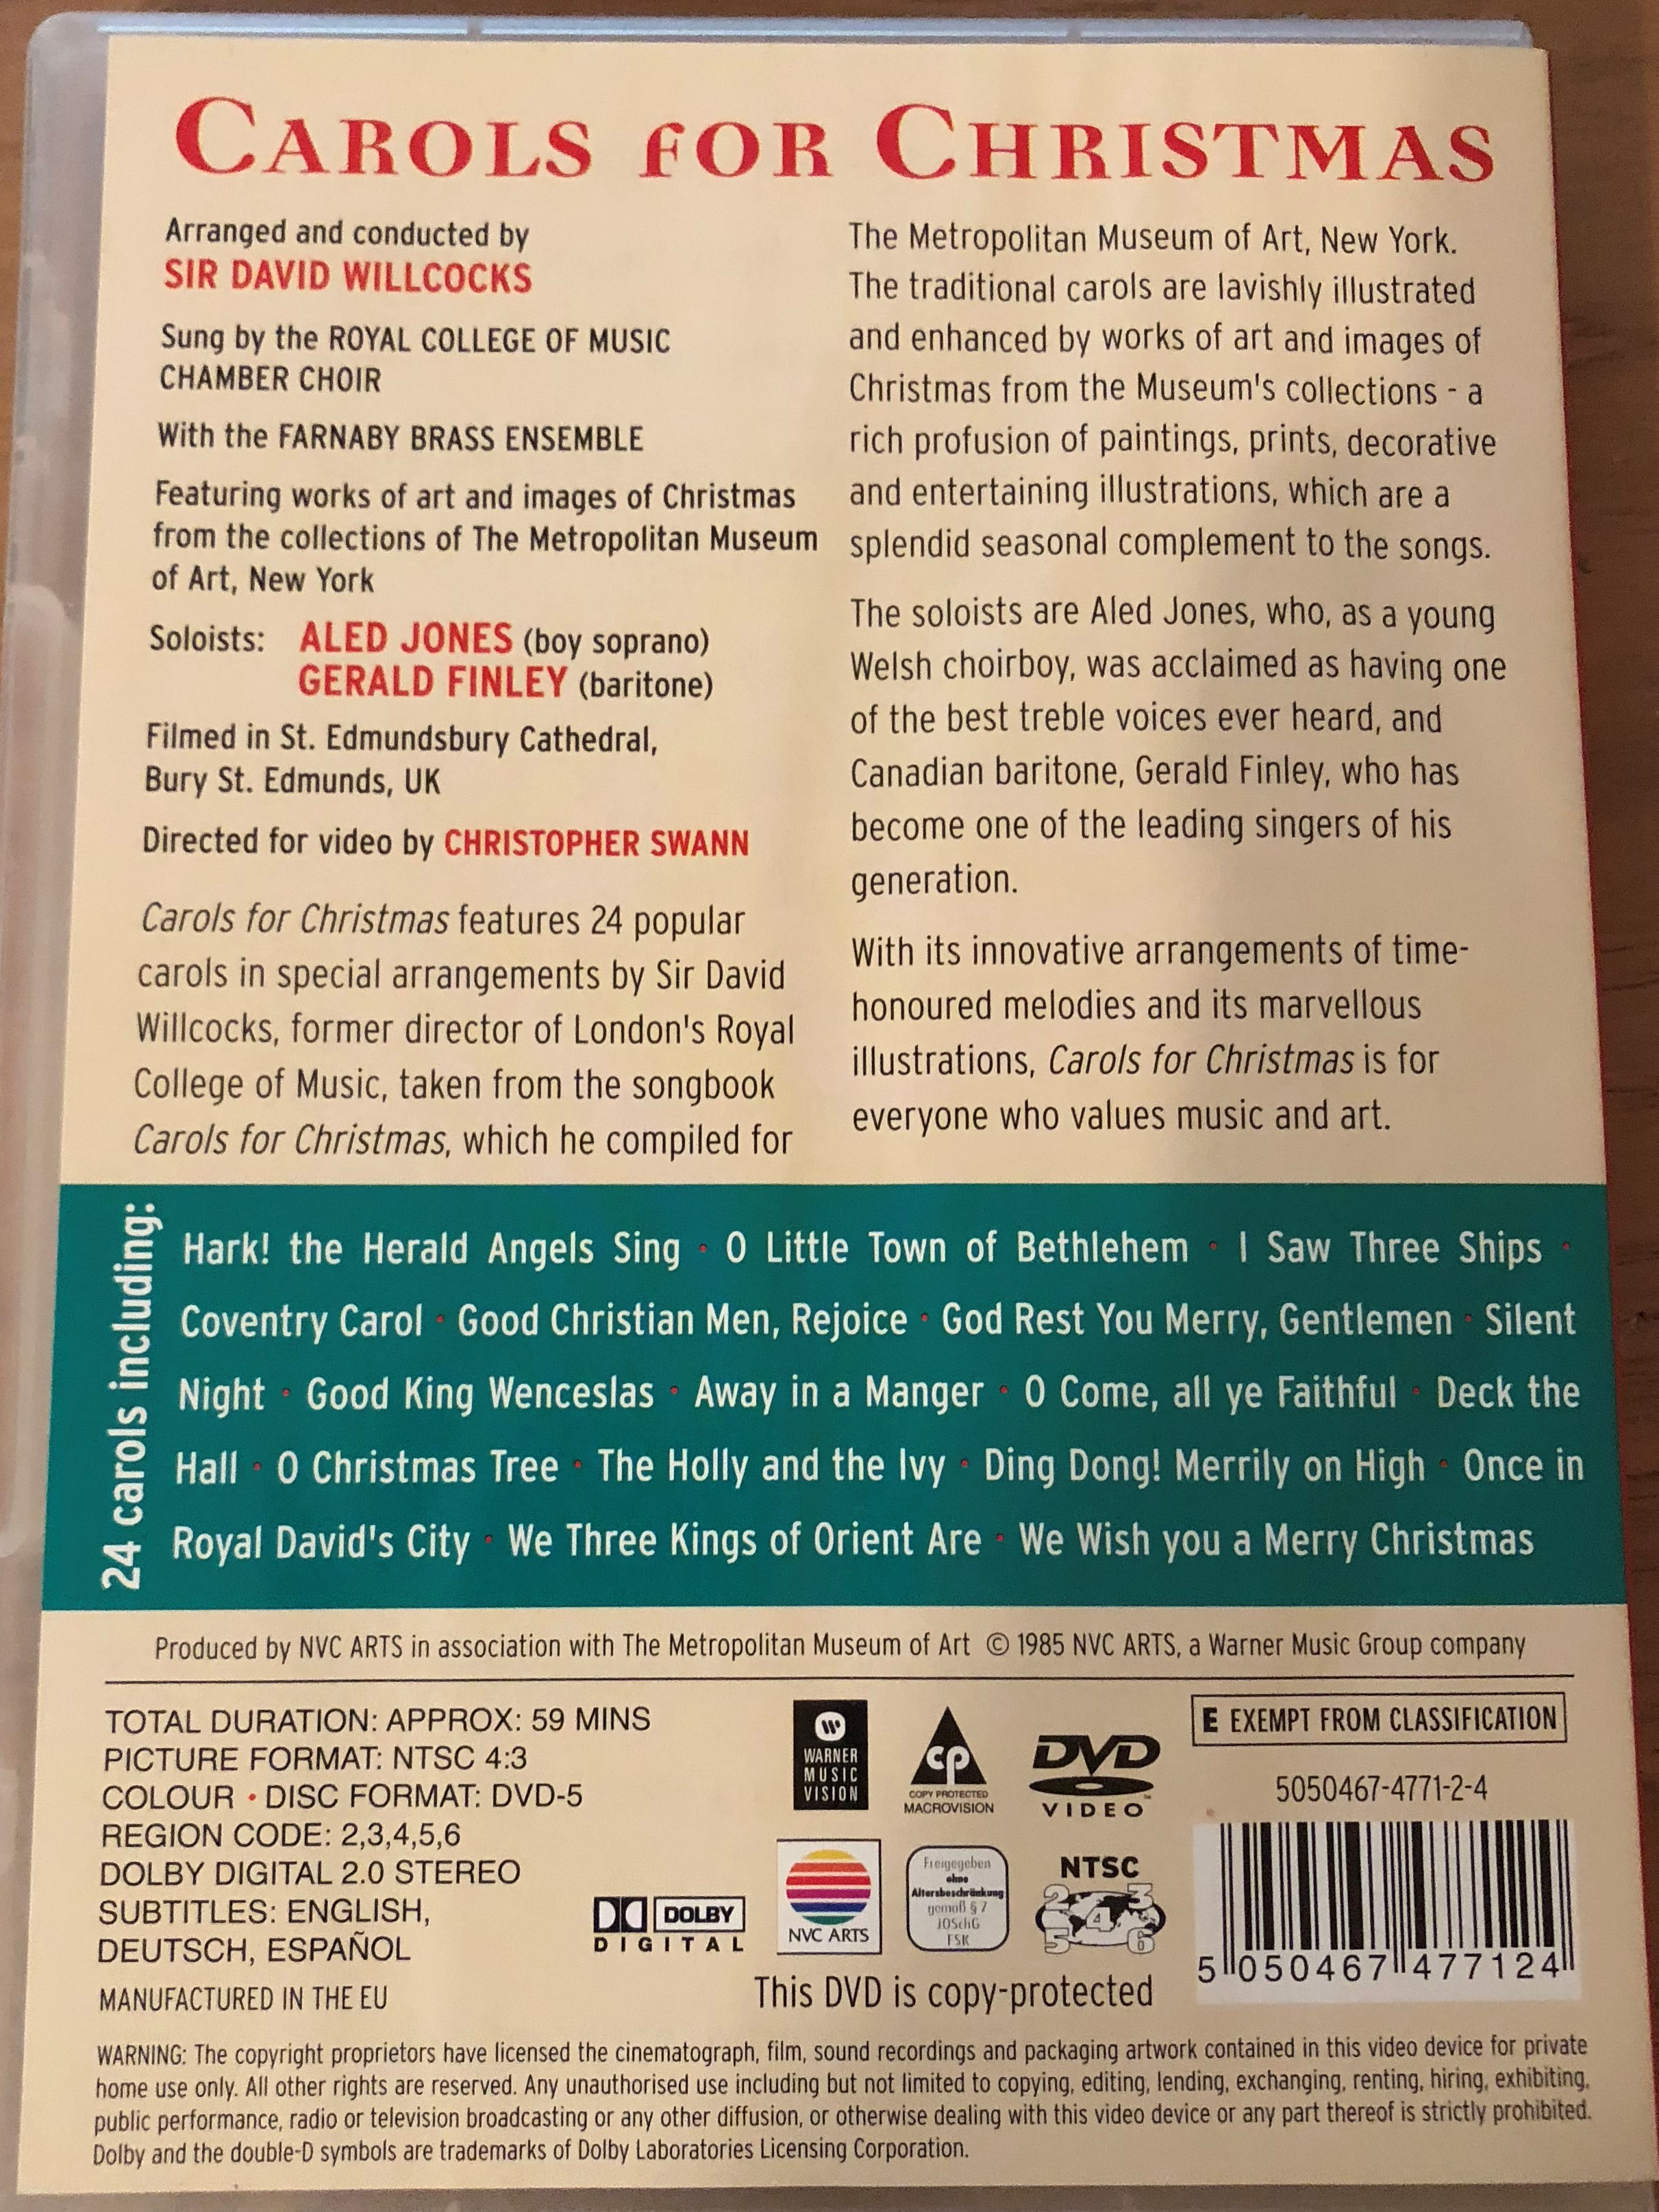 carols-for-christmas-dvd-1985-directed-by-christopher-swann-arranged-conducted-by-sir-david-willcocks-soloists-aled-jones-gerald-finley-nvc-metropolitan-museum-of-art-2-.jpg